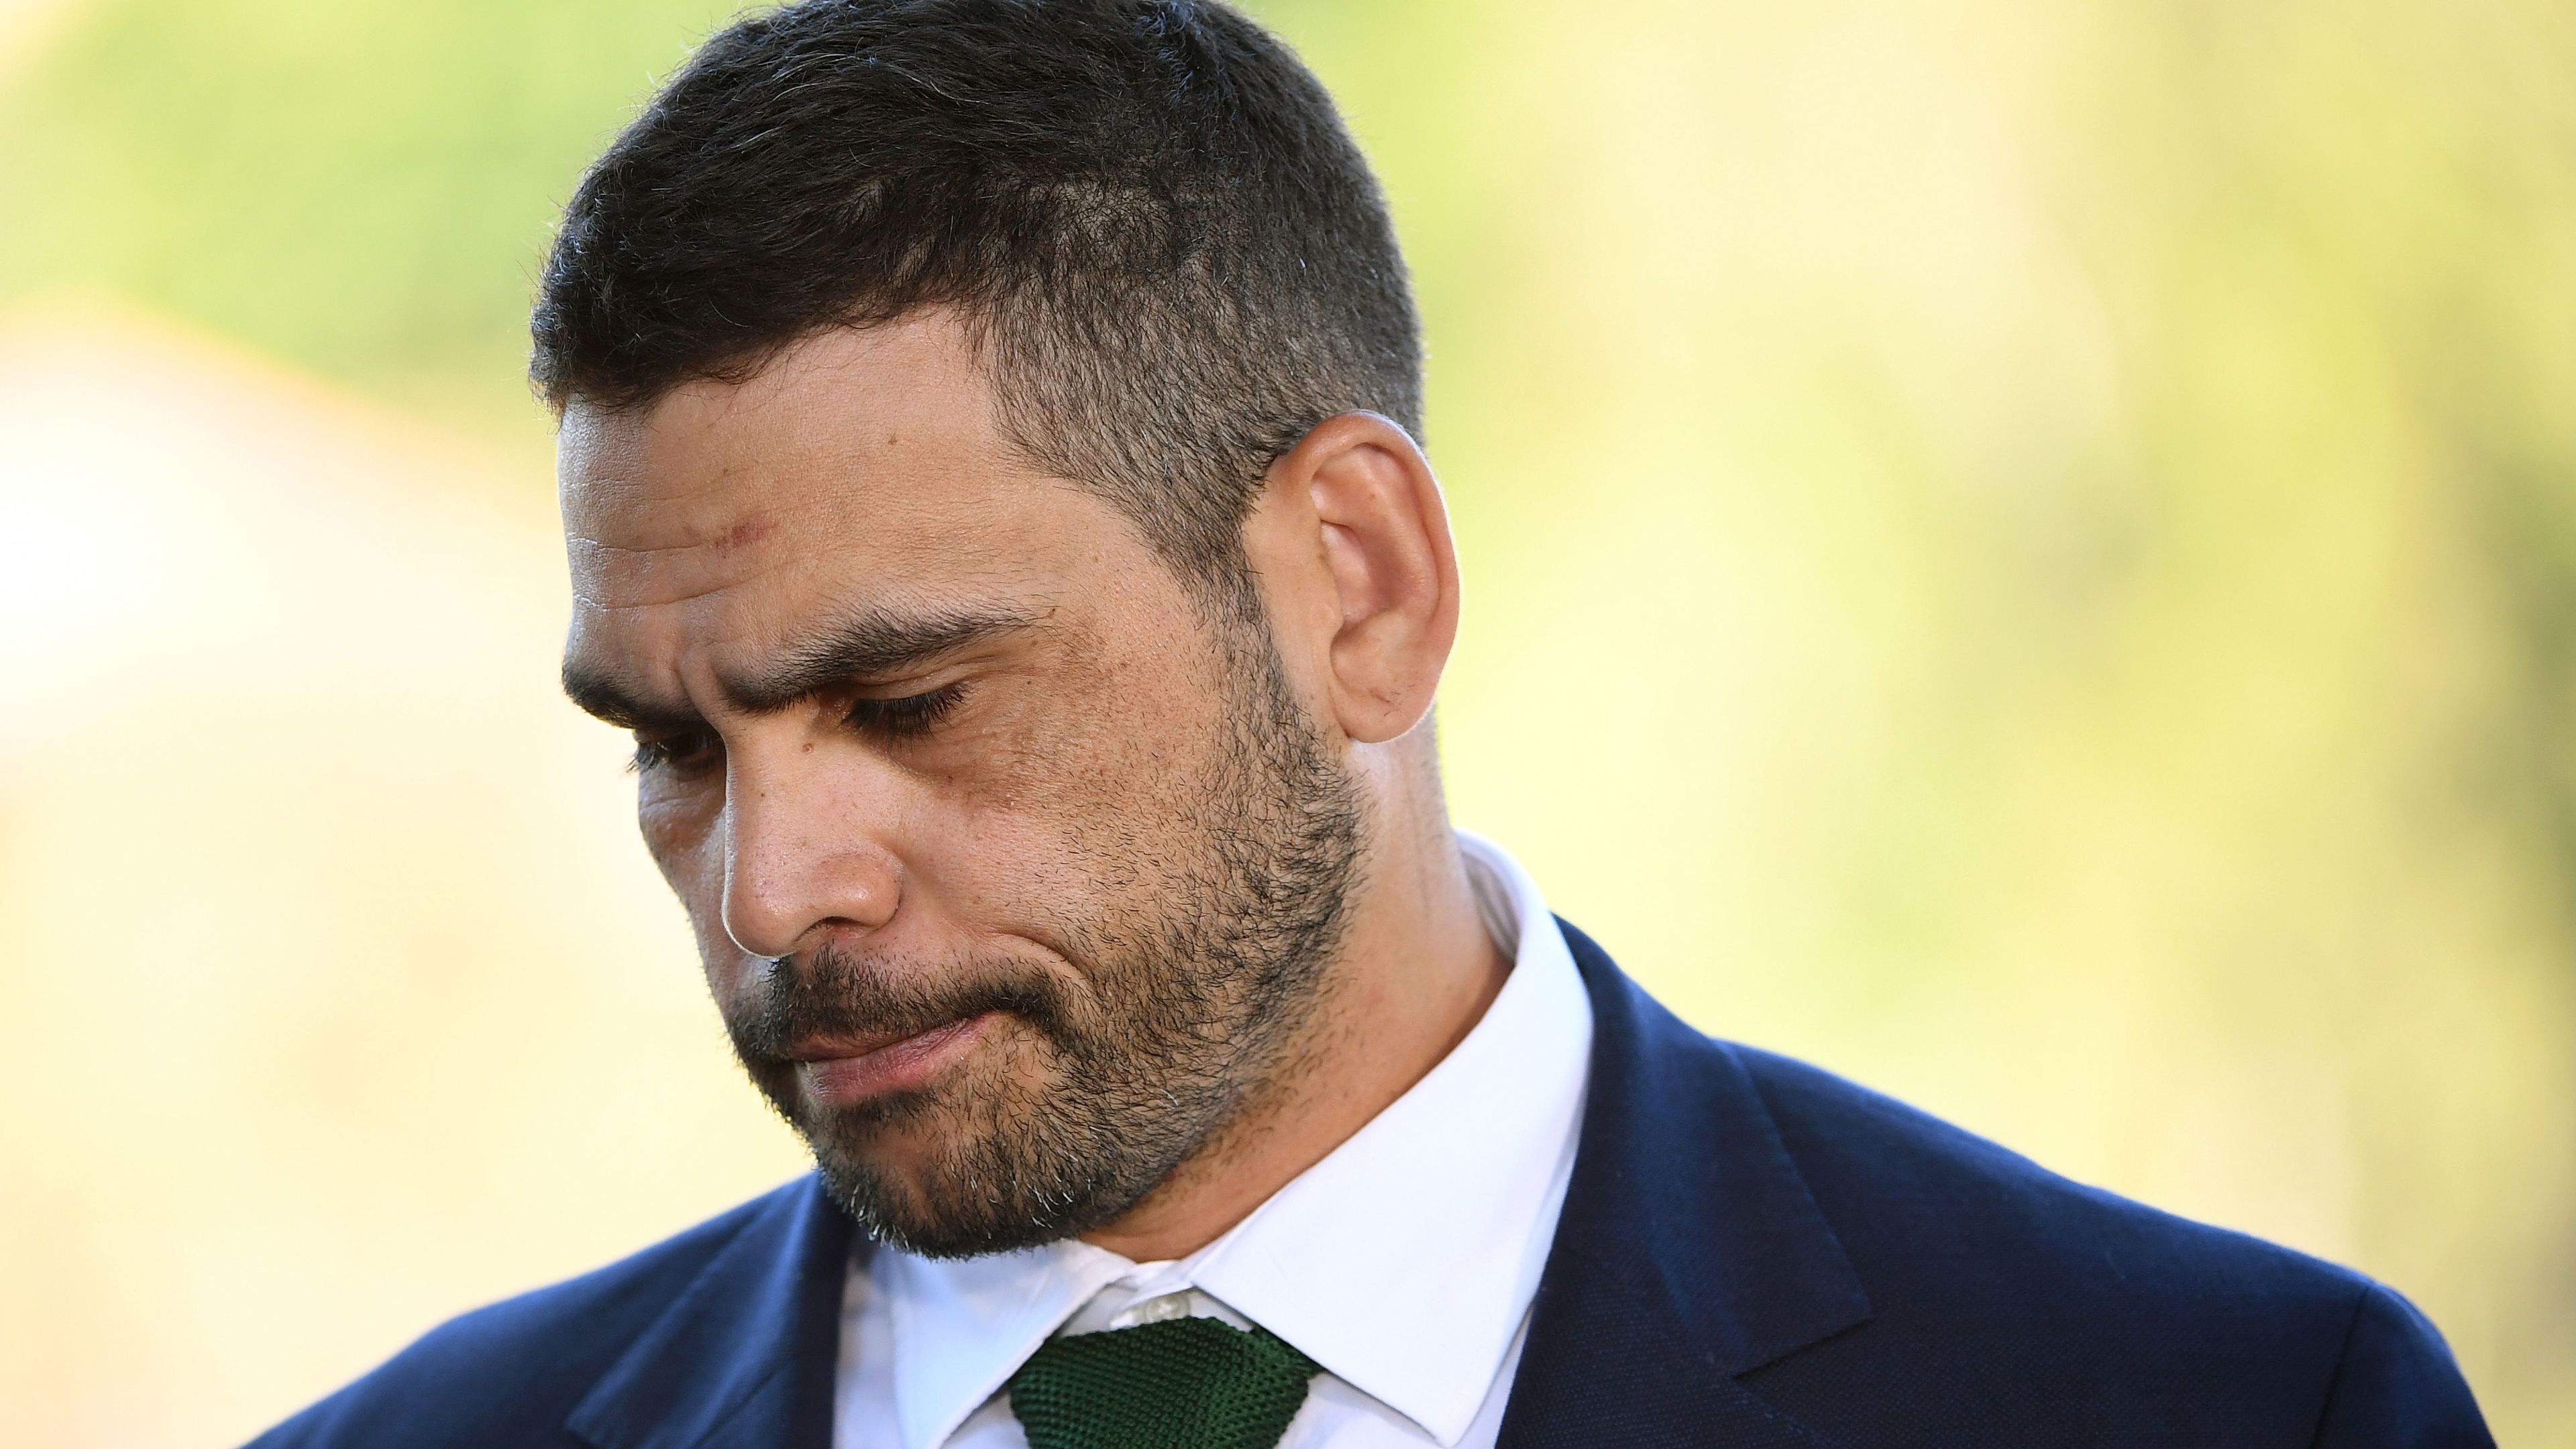 Andrew Johns feels sorry for Greg Inglis over drink driving suspension